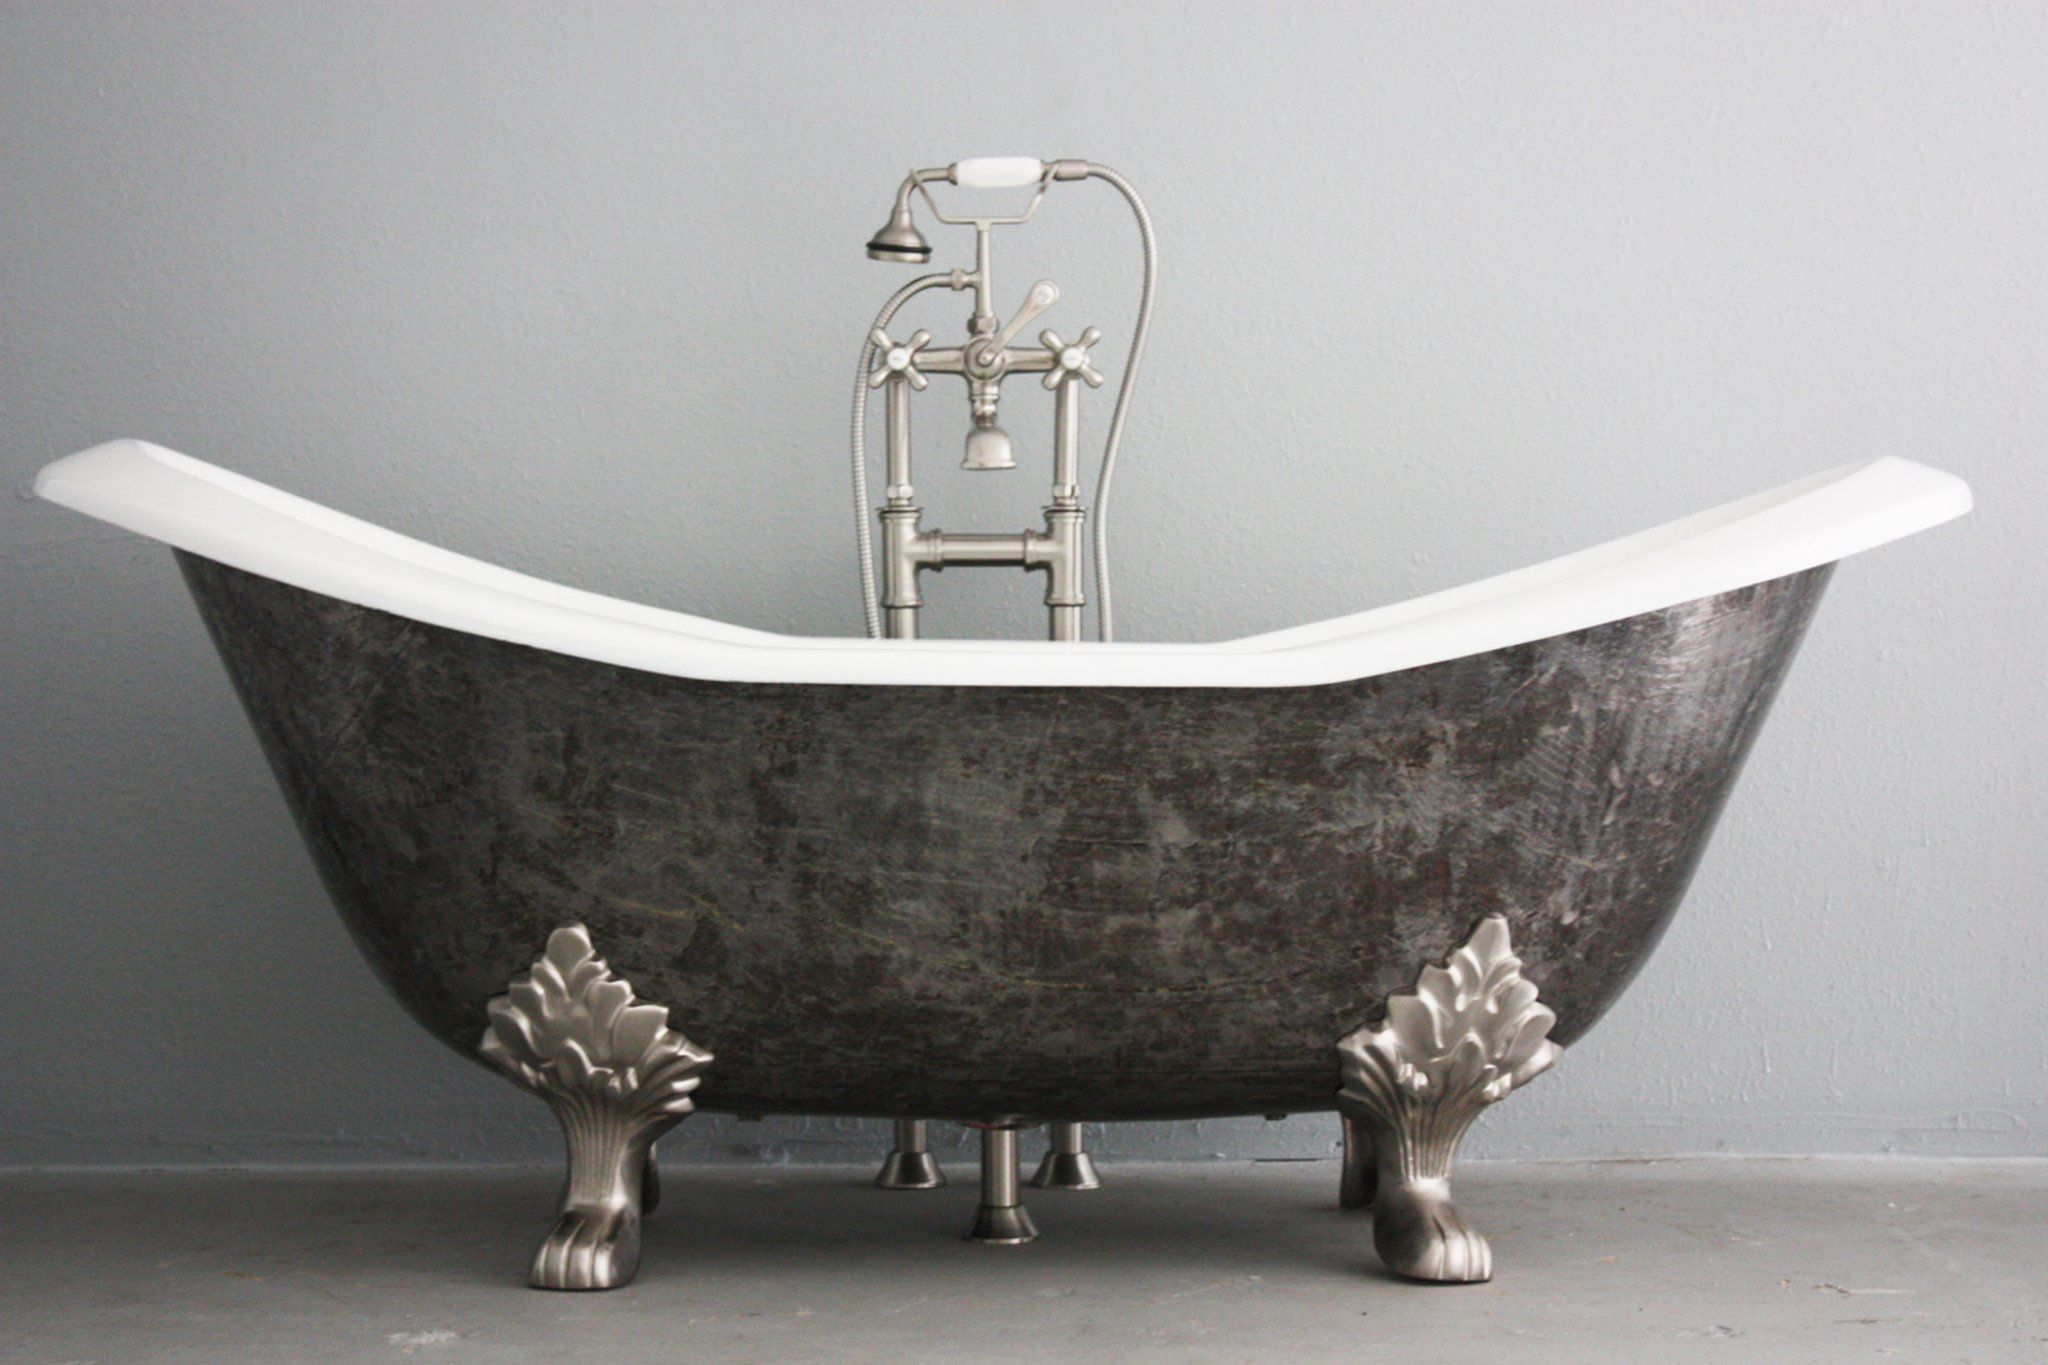 Elven Bath Tub Slipper Tubs Traditional Bathtubs Clawfoot Tub